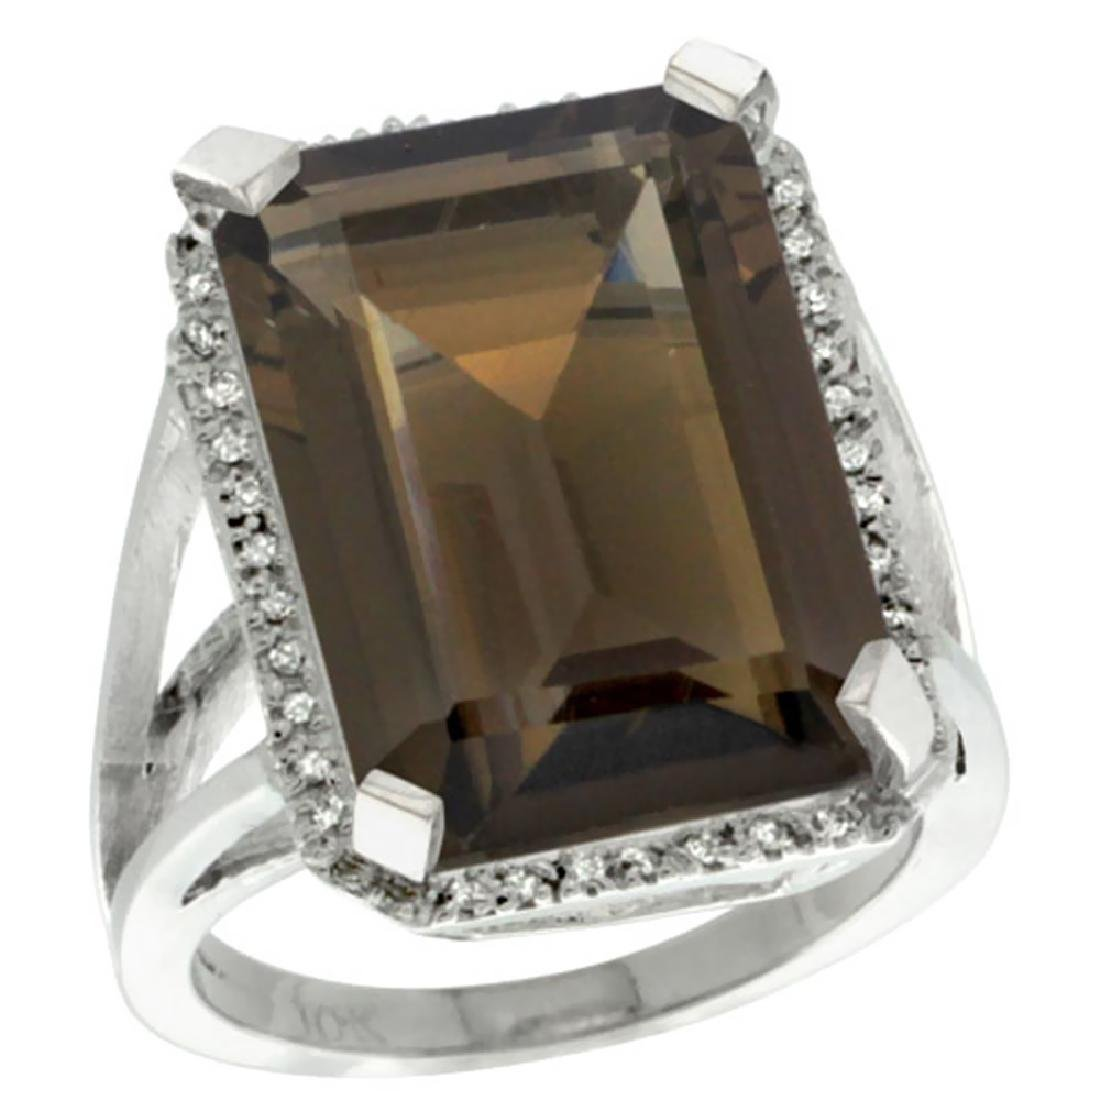 Natural 15.06 ctw Smoky-topaz & Diamond Engagement Ring